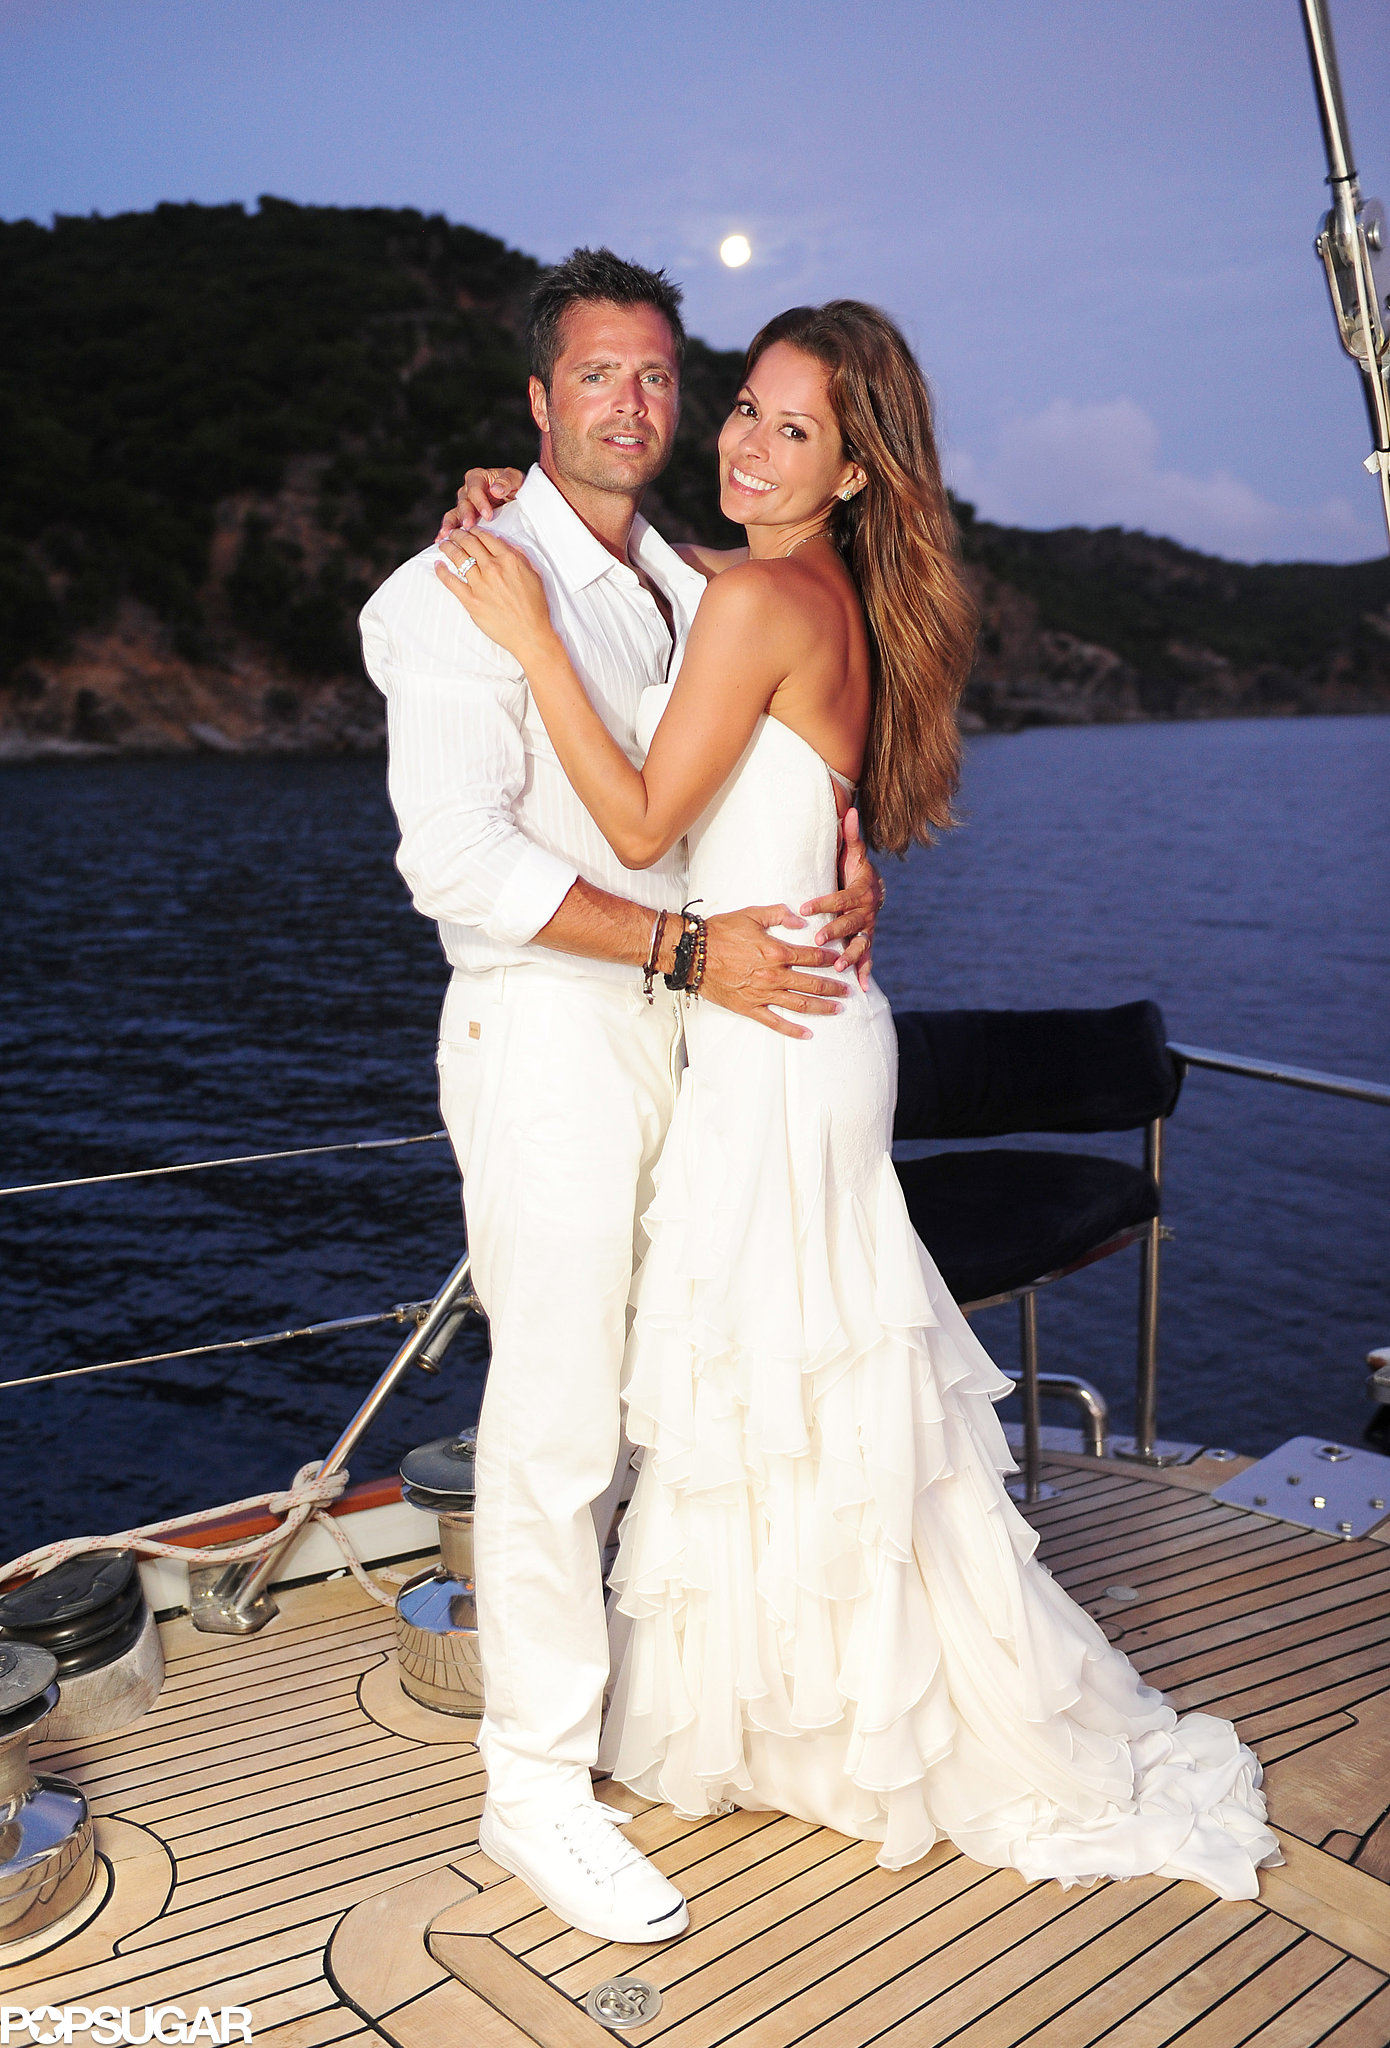 Brooke Burke and David Charvet wed in August 2011 in St. Barts.